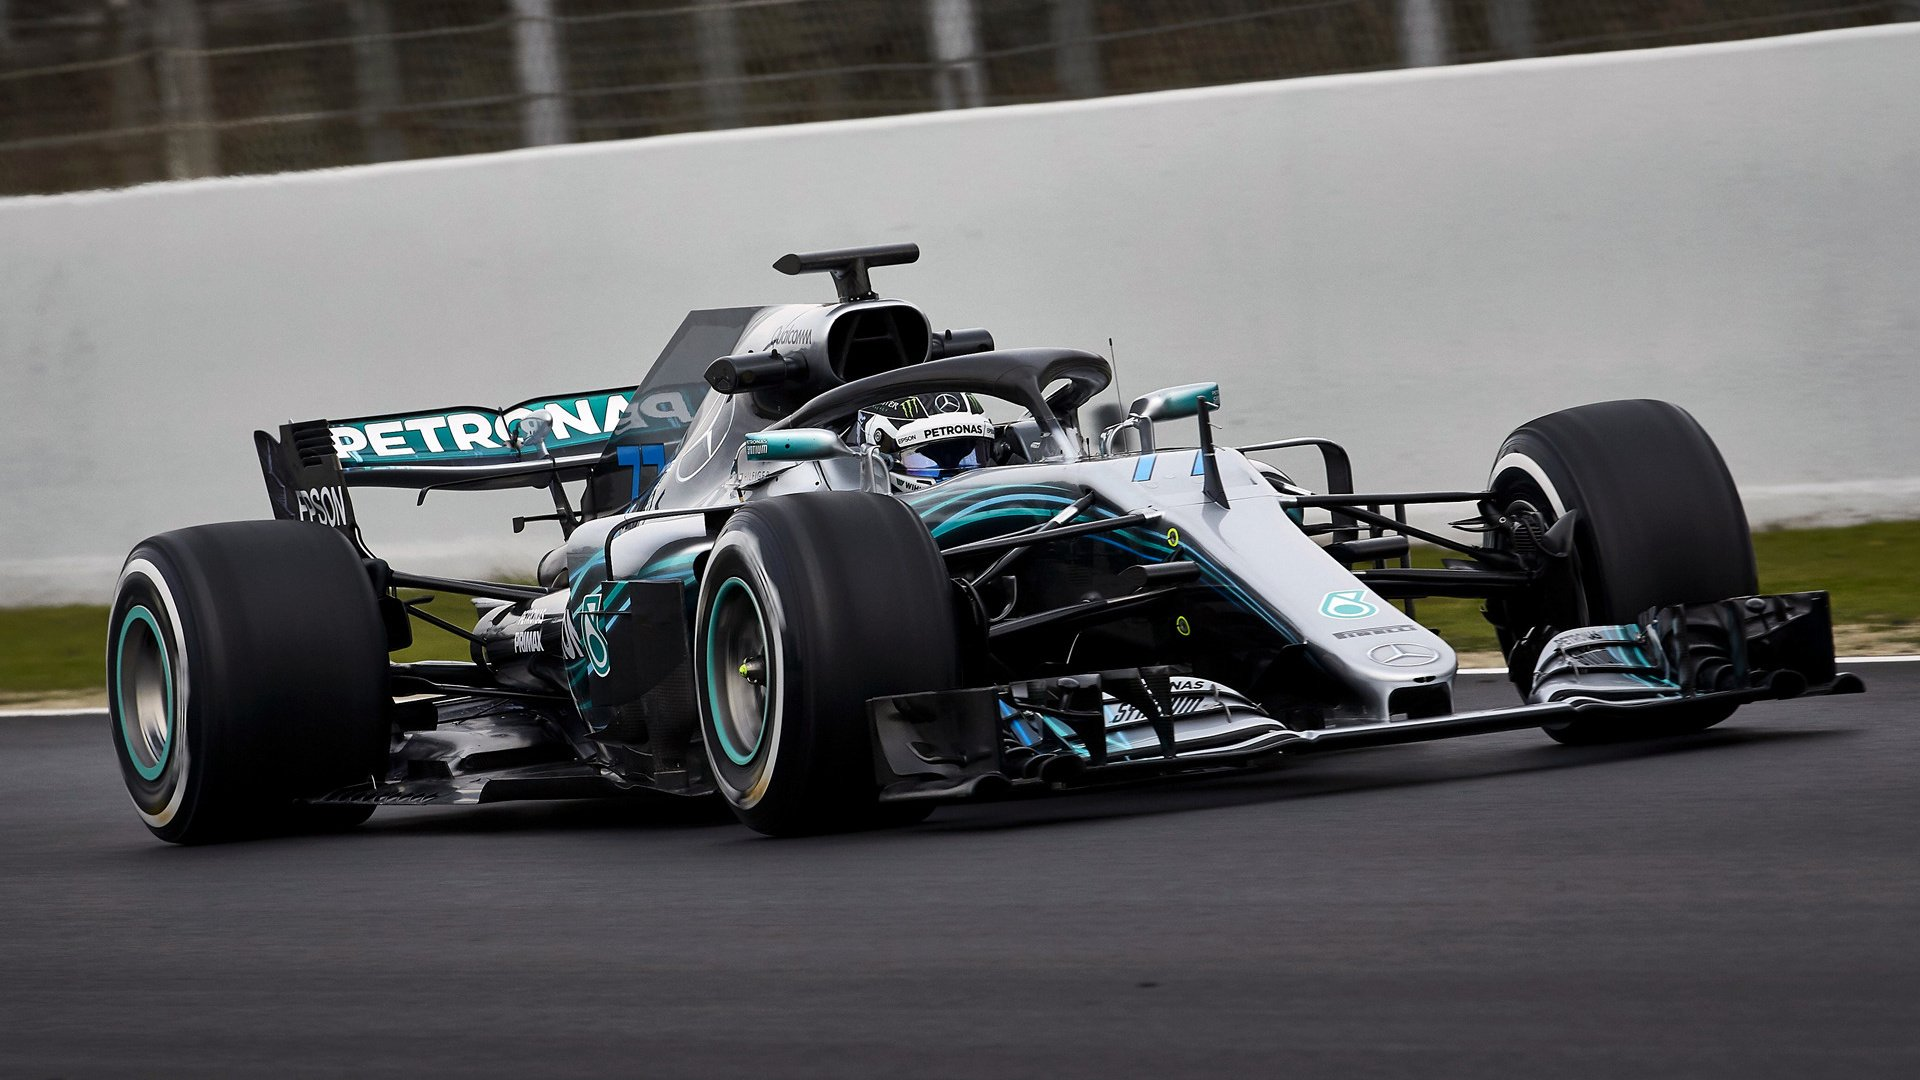 Mercedes f1 wallpaper 1280x800 7